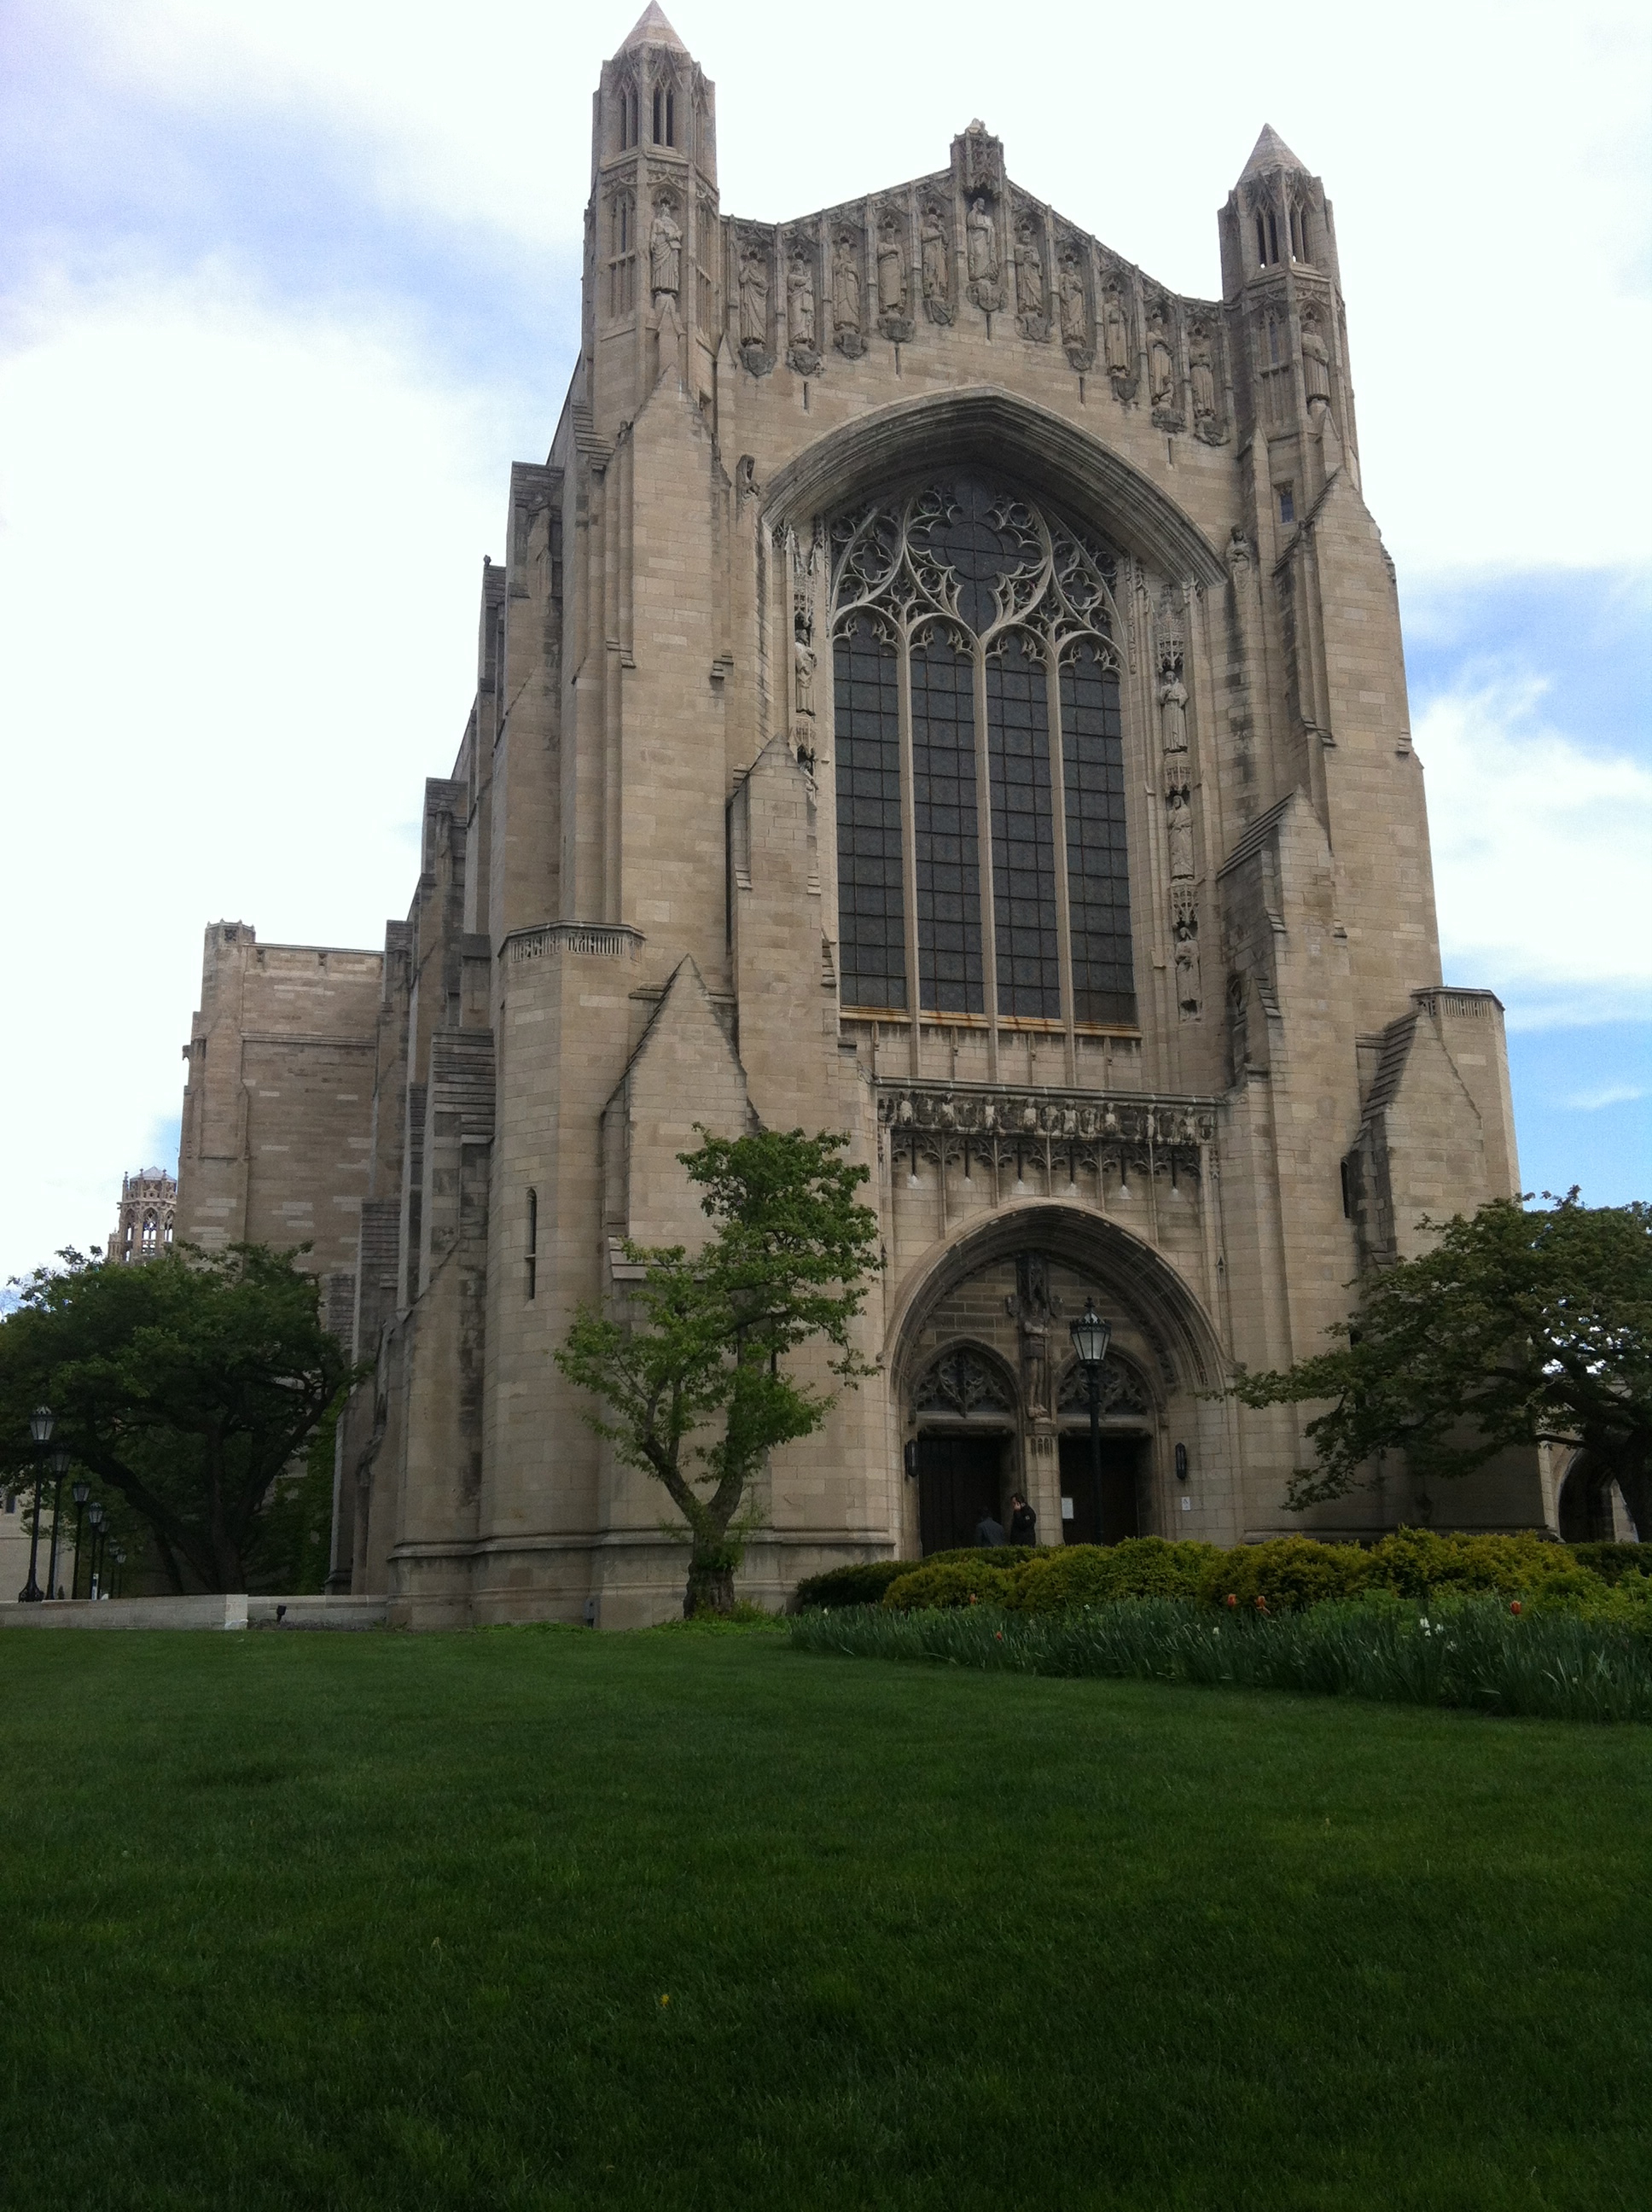 Rockefeller Chapel on the U of C campus. Hyde Park, IL.